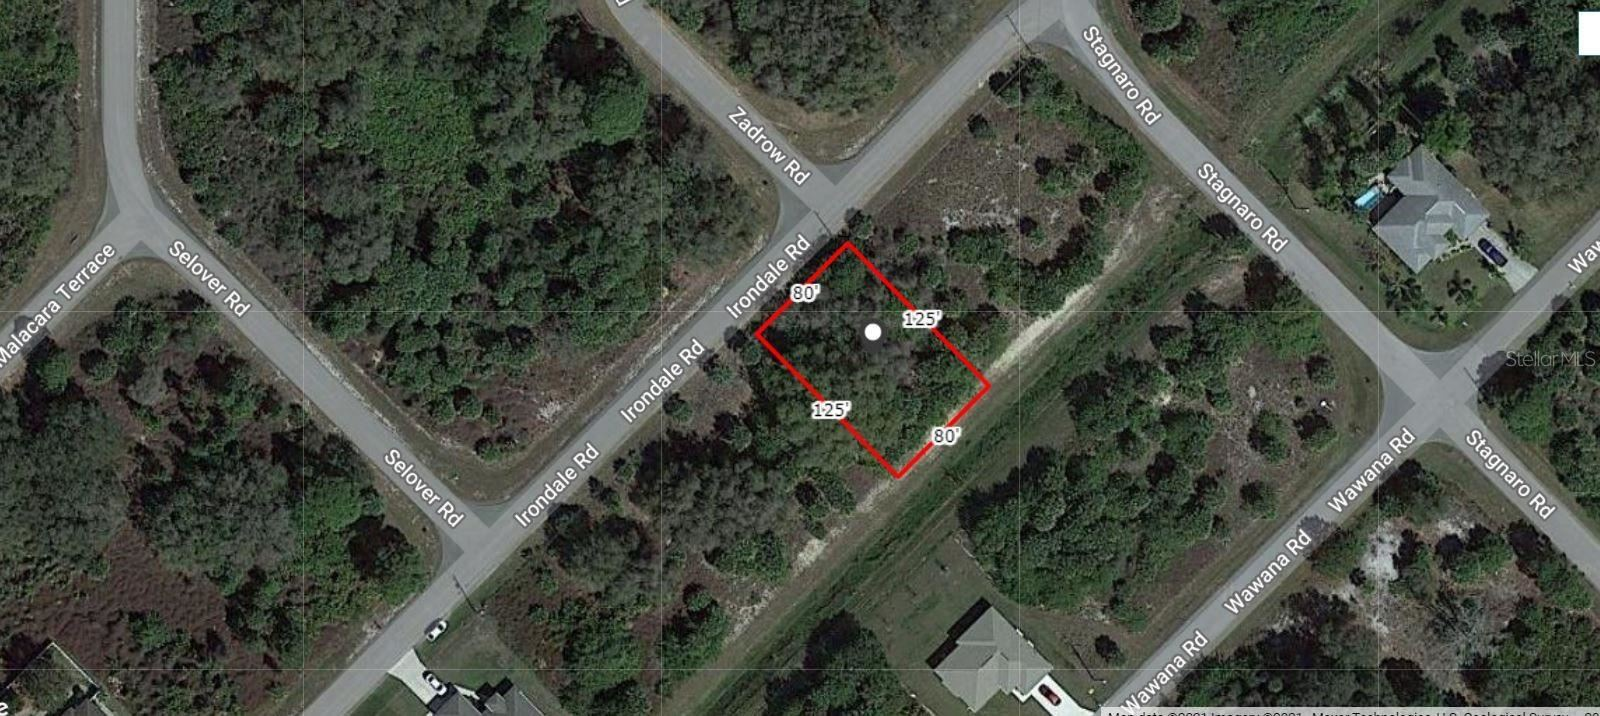 Photo of IRONDALE ROAD, NORTH PORT, FL 34287 (MLS # A4503203)